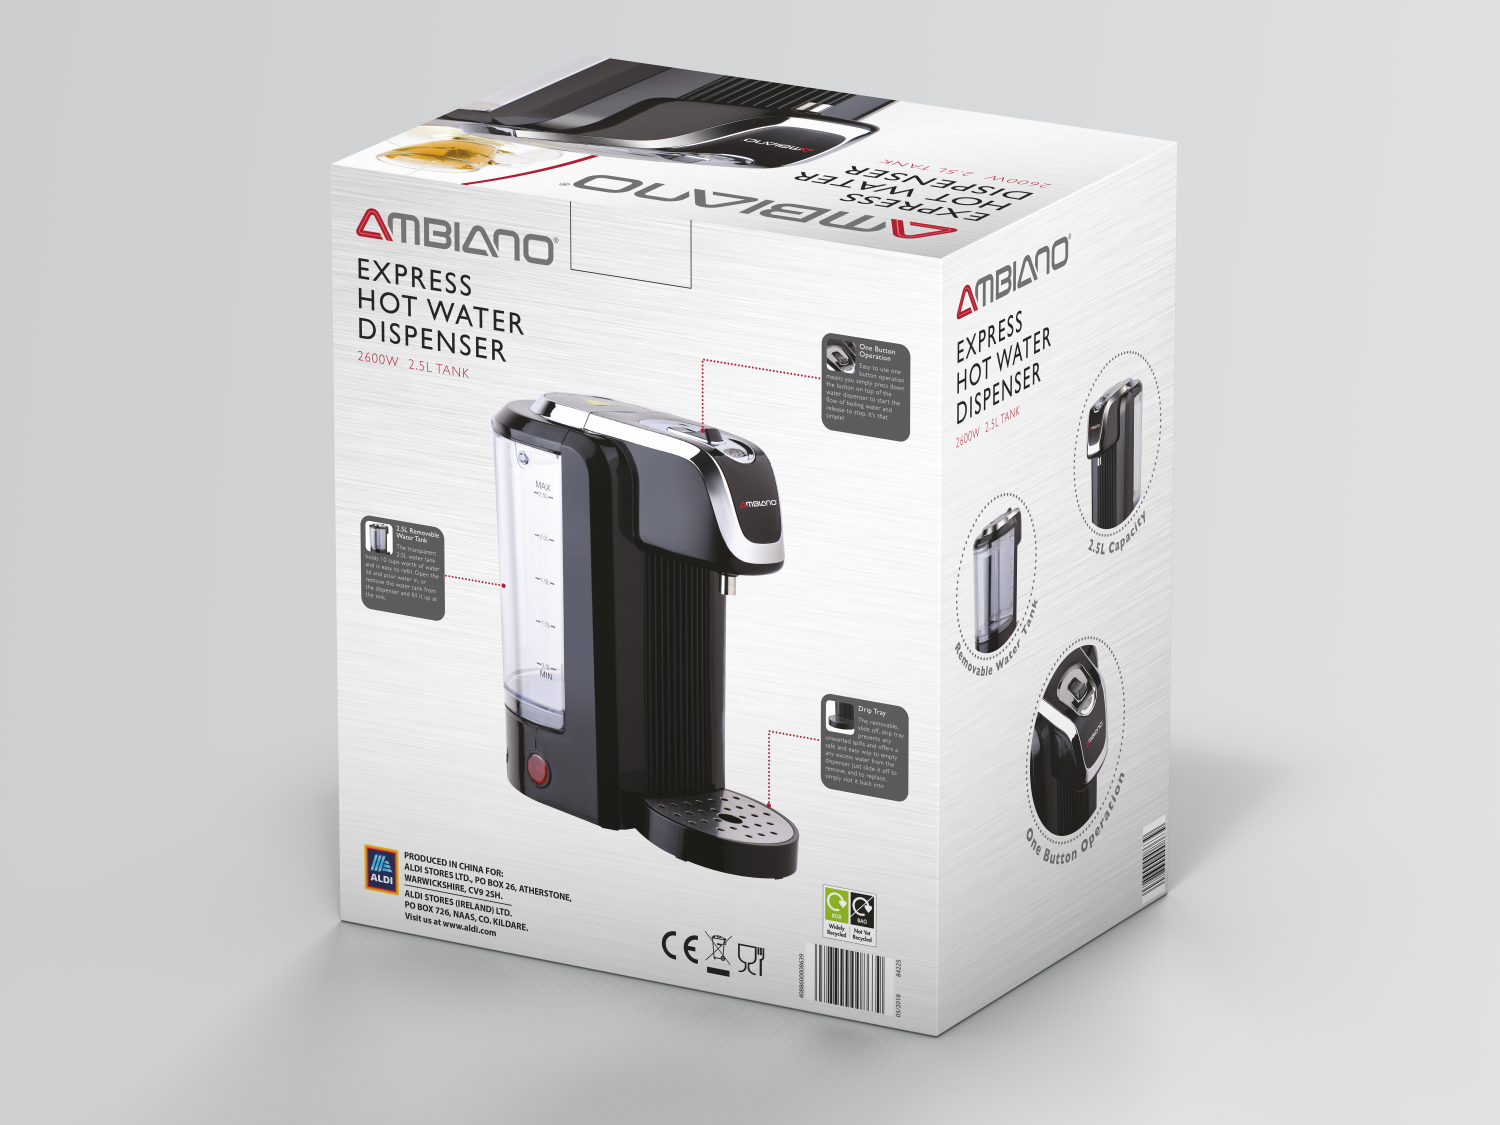 Aldi Ambiano hot water dispenser packaging design back view